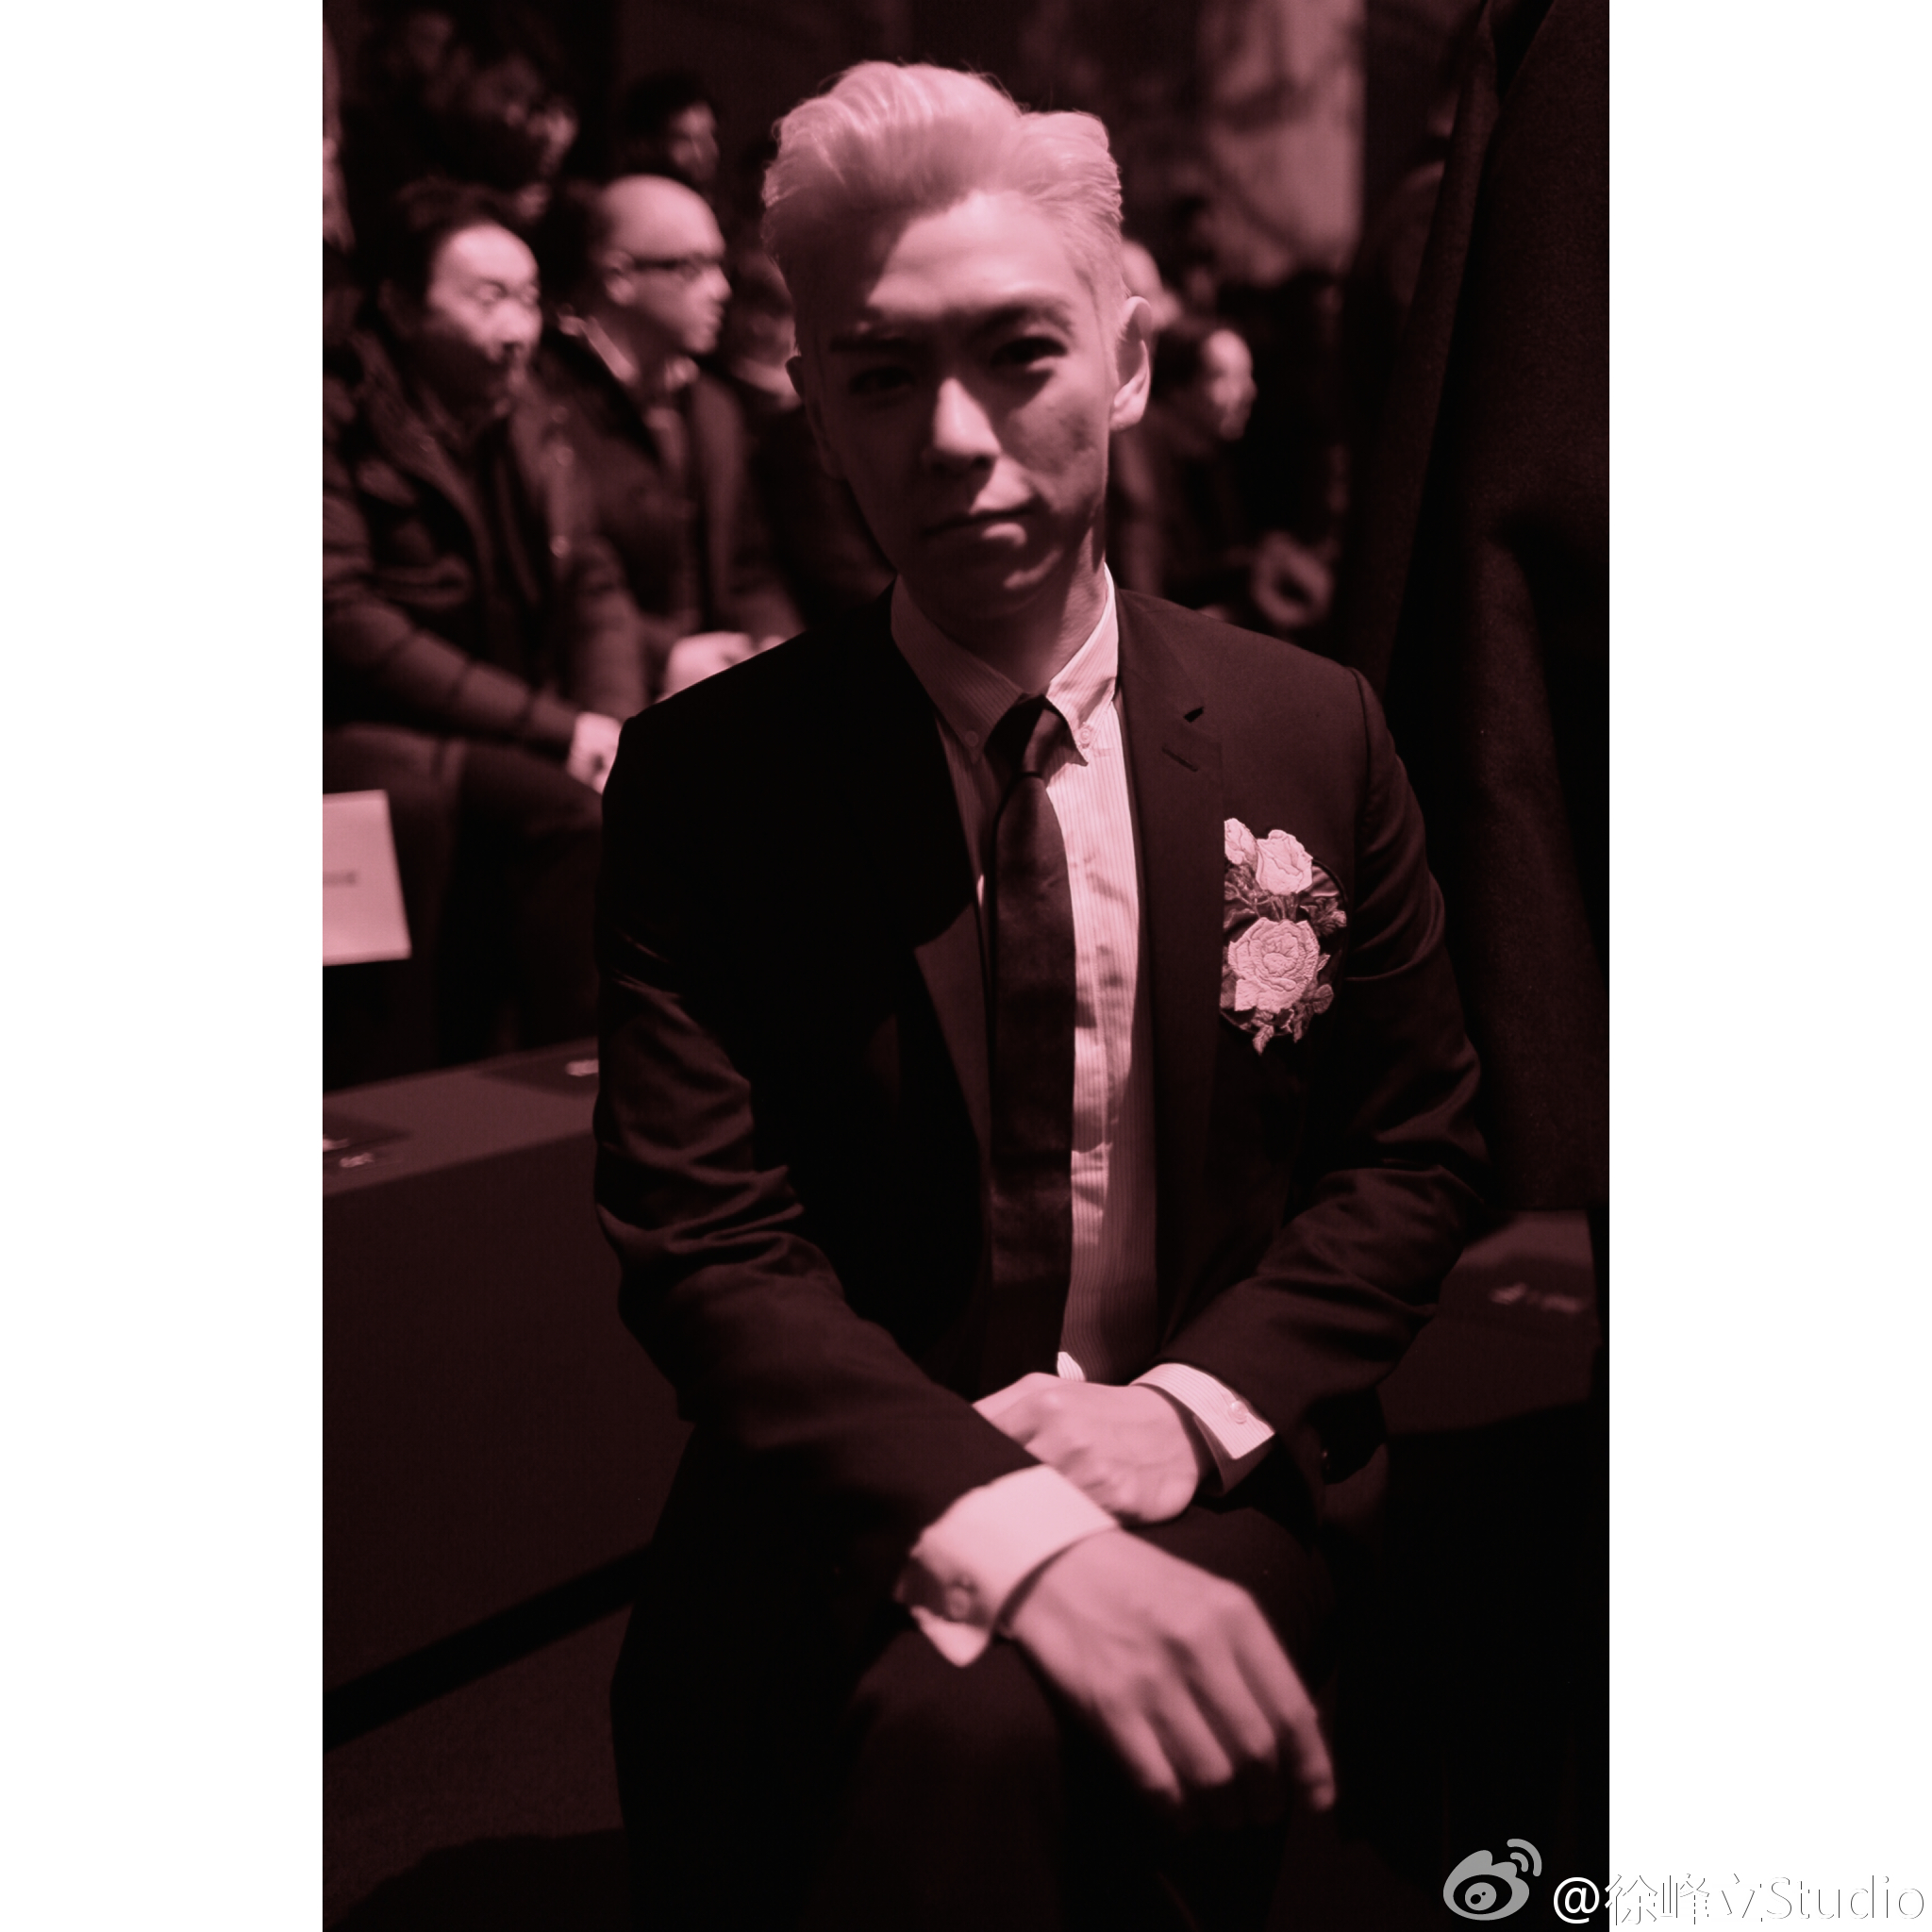 TOP - Dior Homme Fashion Show - 23jan2016 - 徐峰立Studio - 04